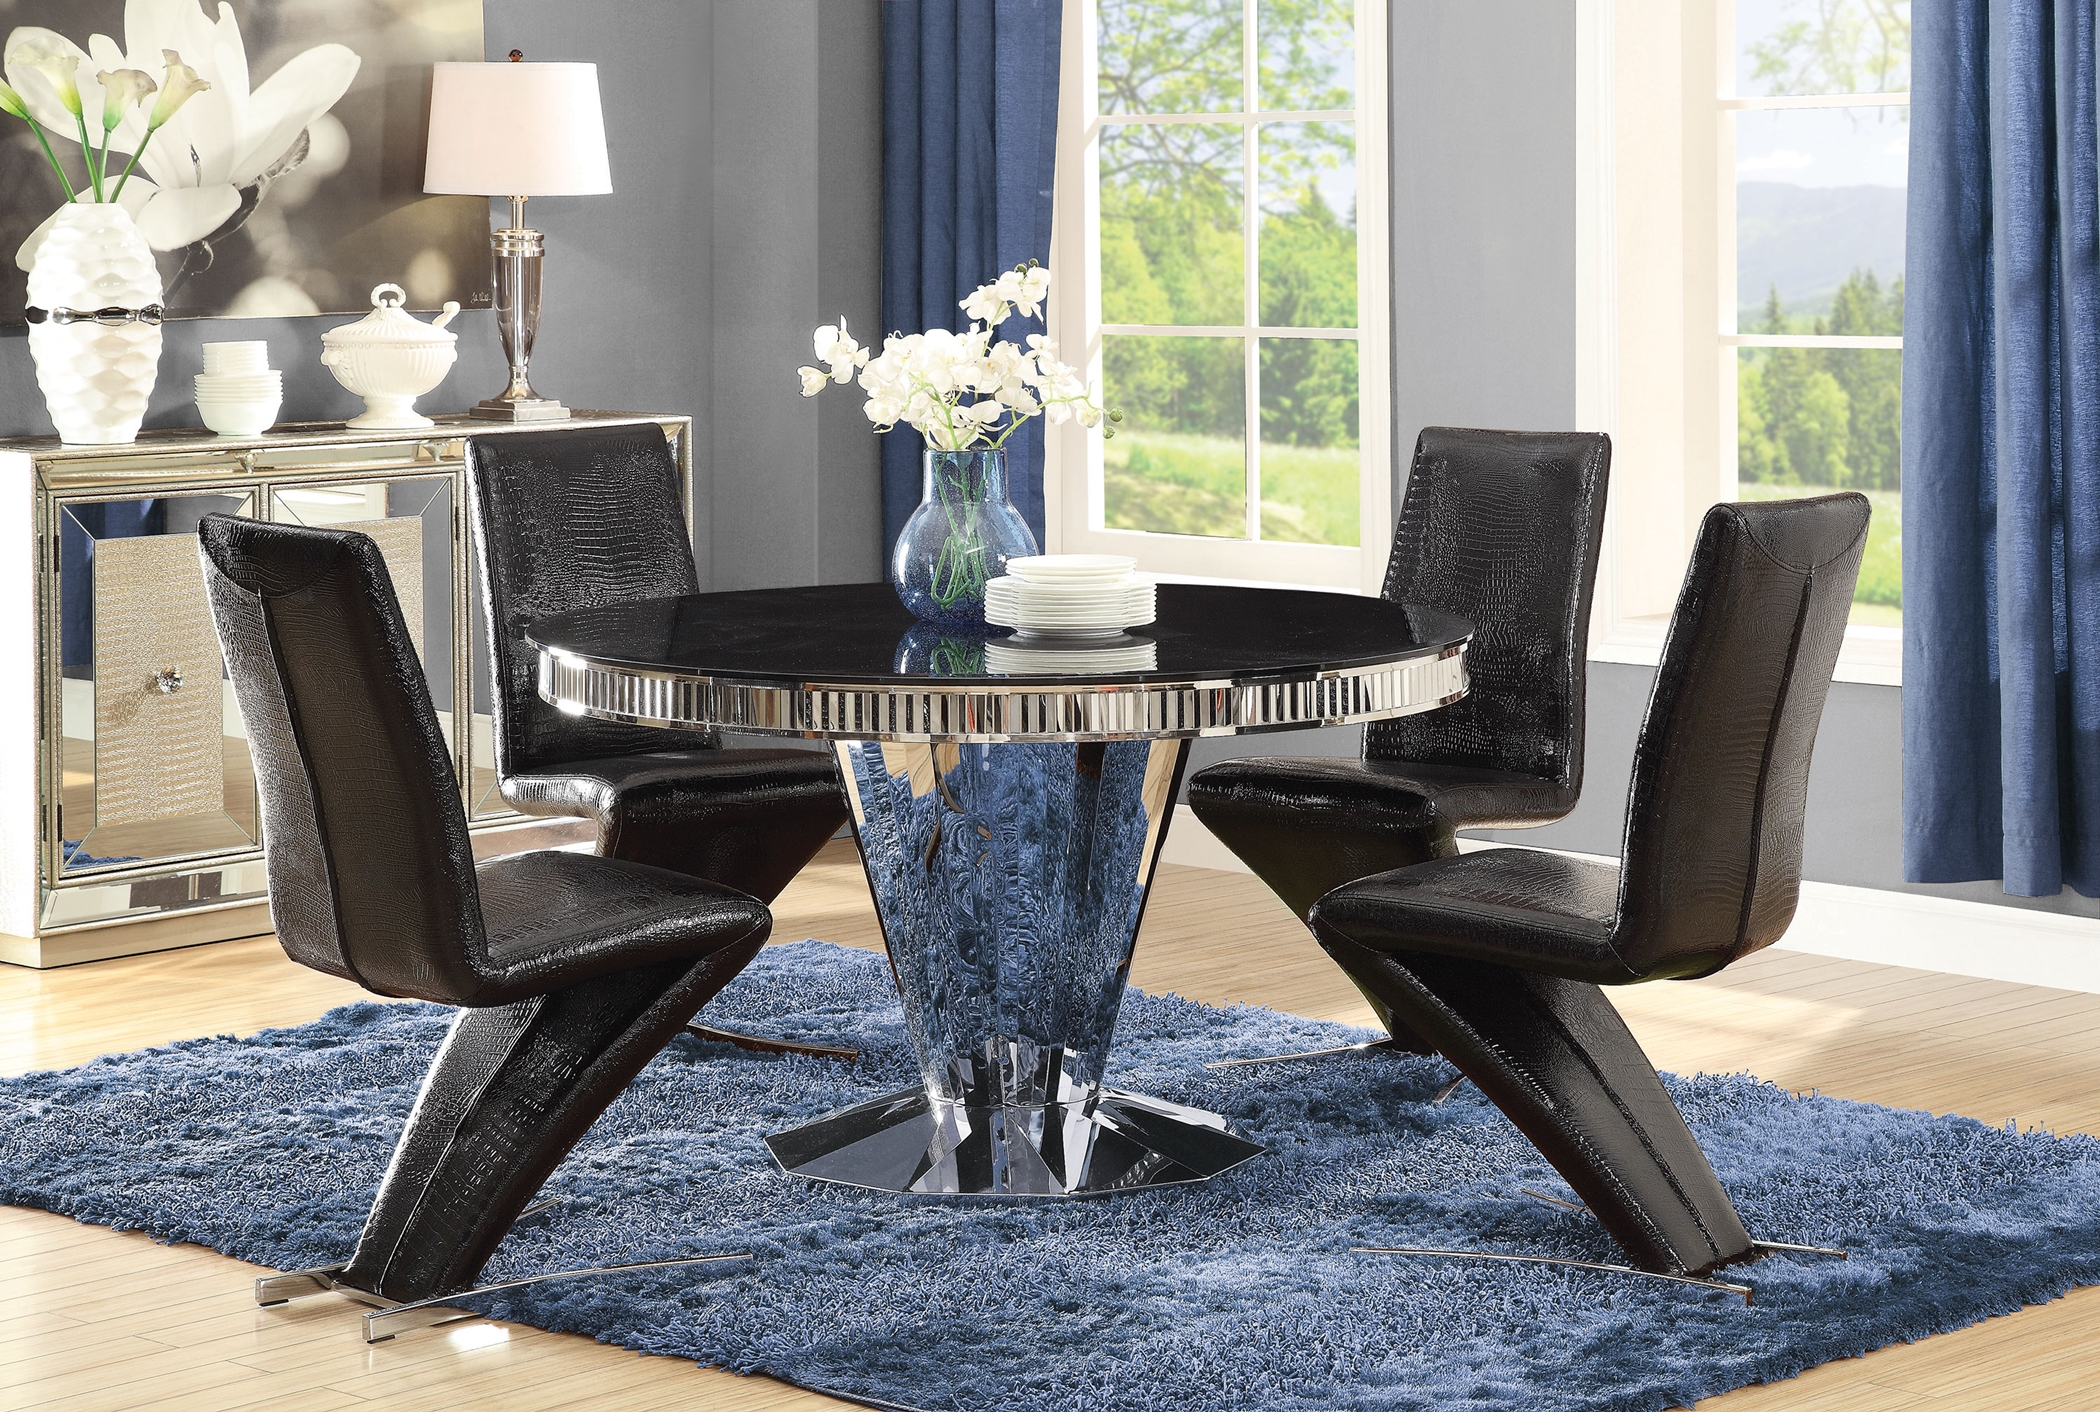 Barzini Black and Chrome 5 Pc. Set